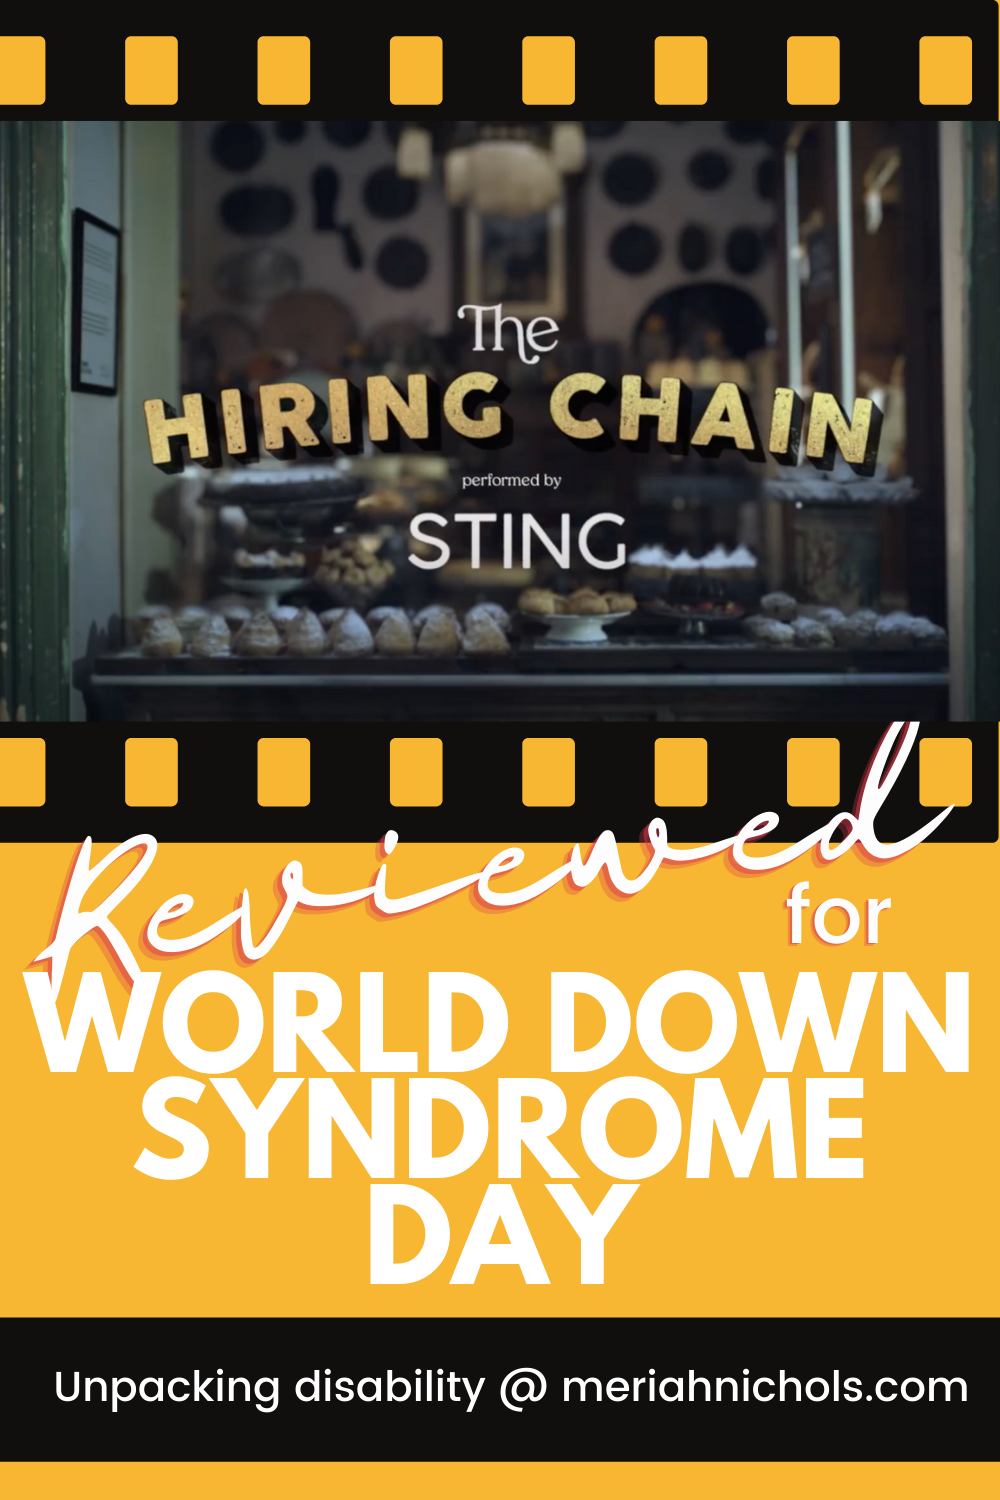 """The Hiring Chain, new video from Coor Down for World Down Syndrome Day, highlighting hiring people with Down syndrome [image of a glass front shop, text on the glass reads """"the hiring chain"""" featuring sting]"""